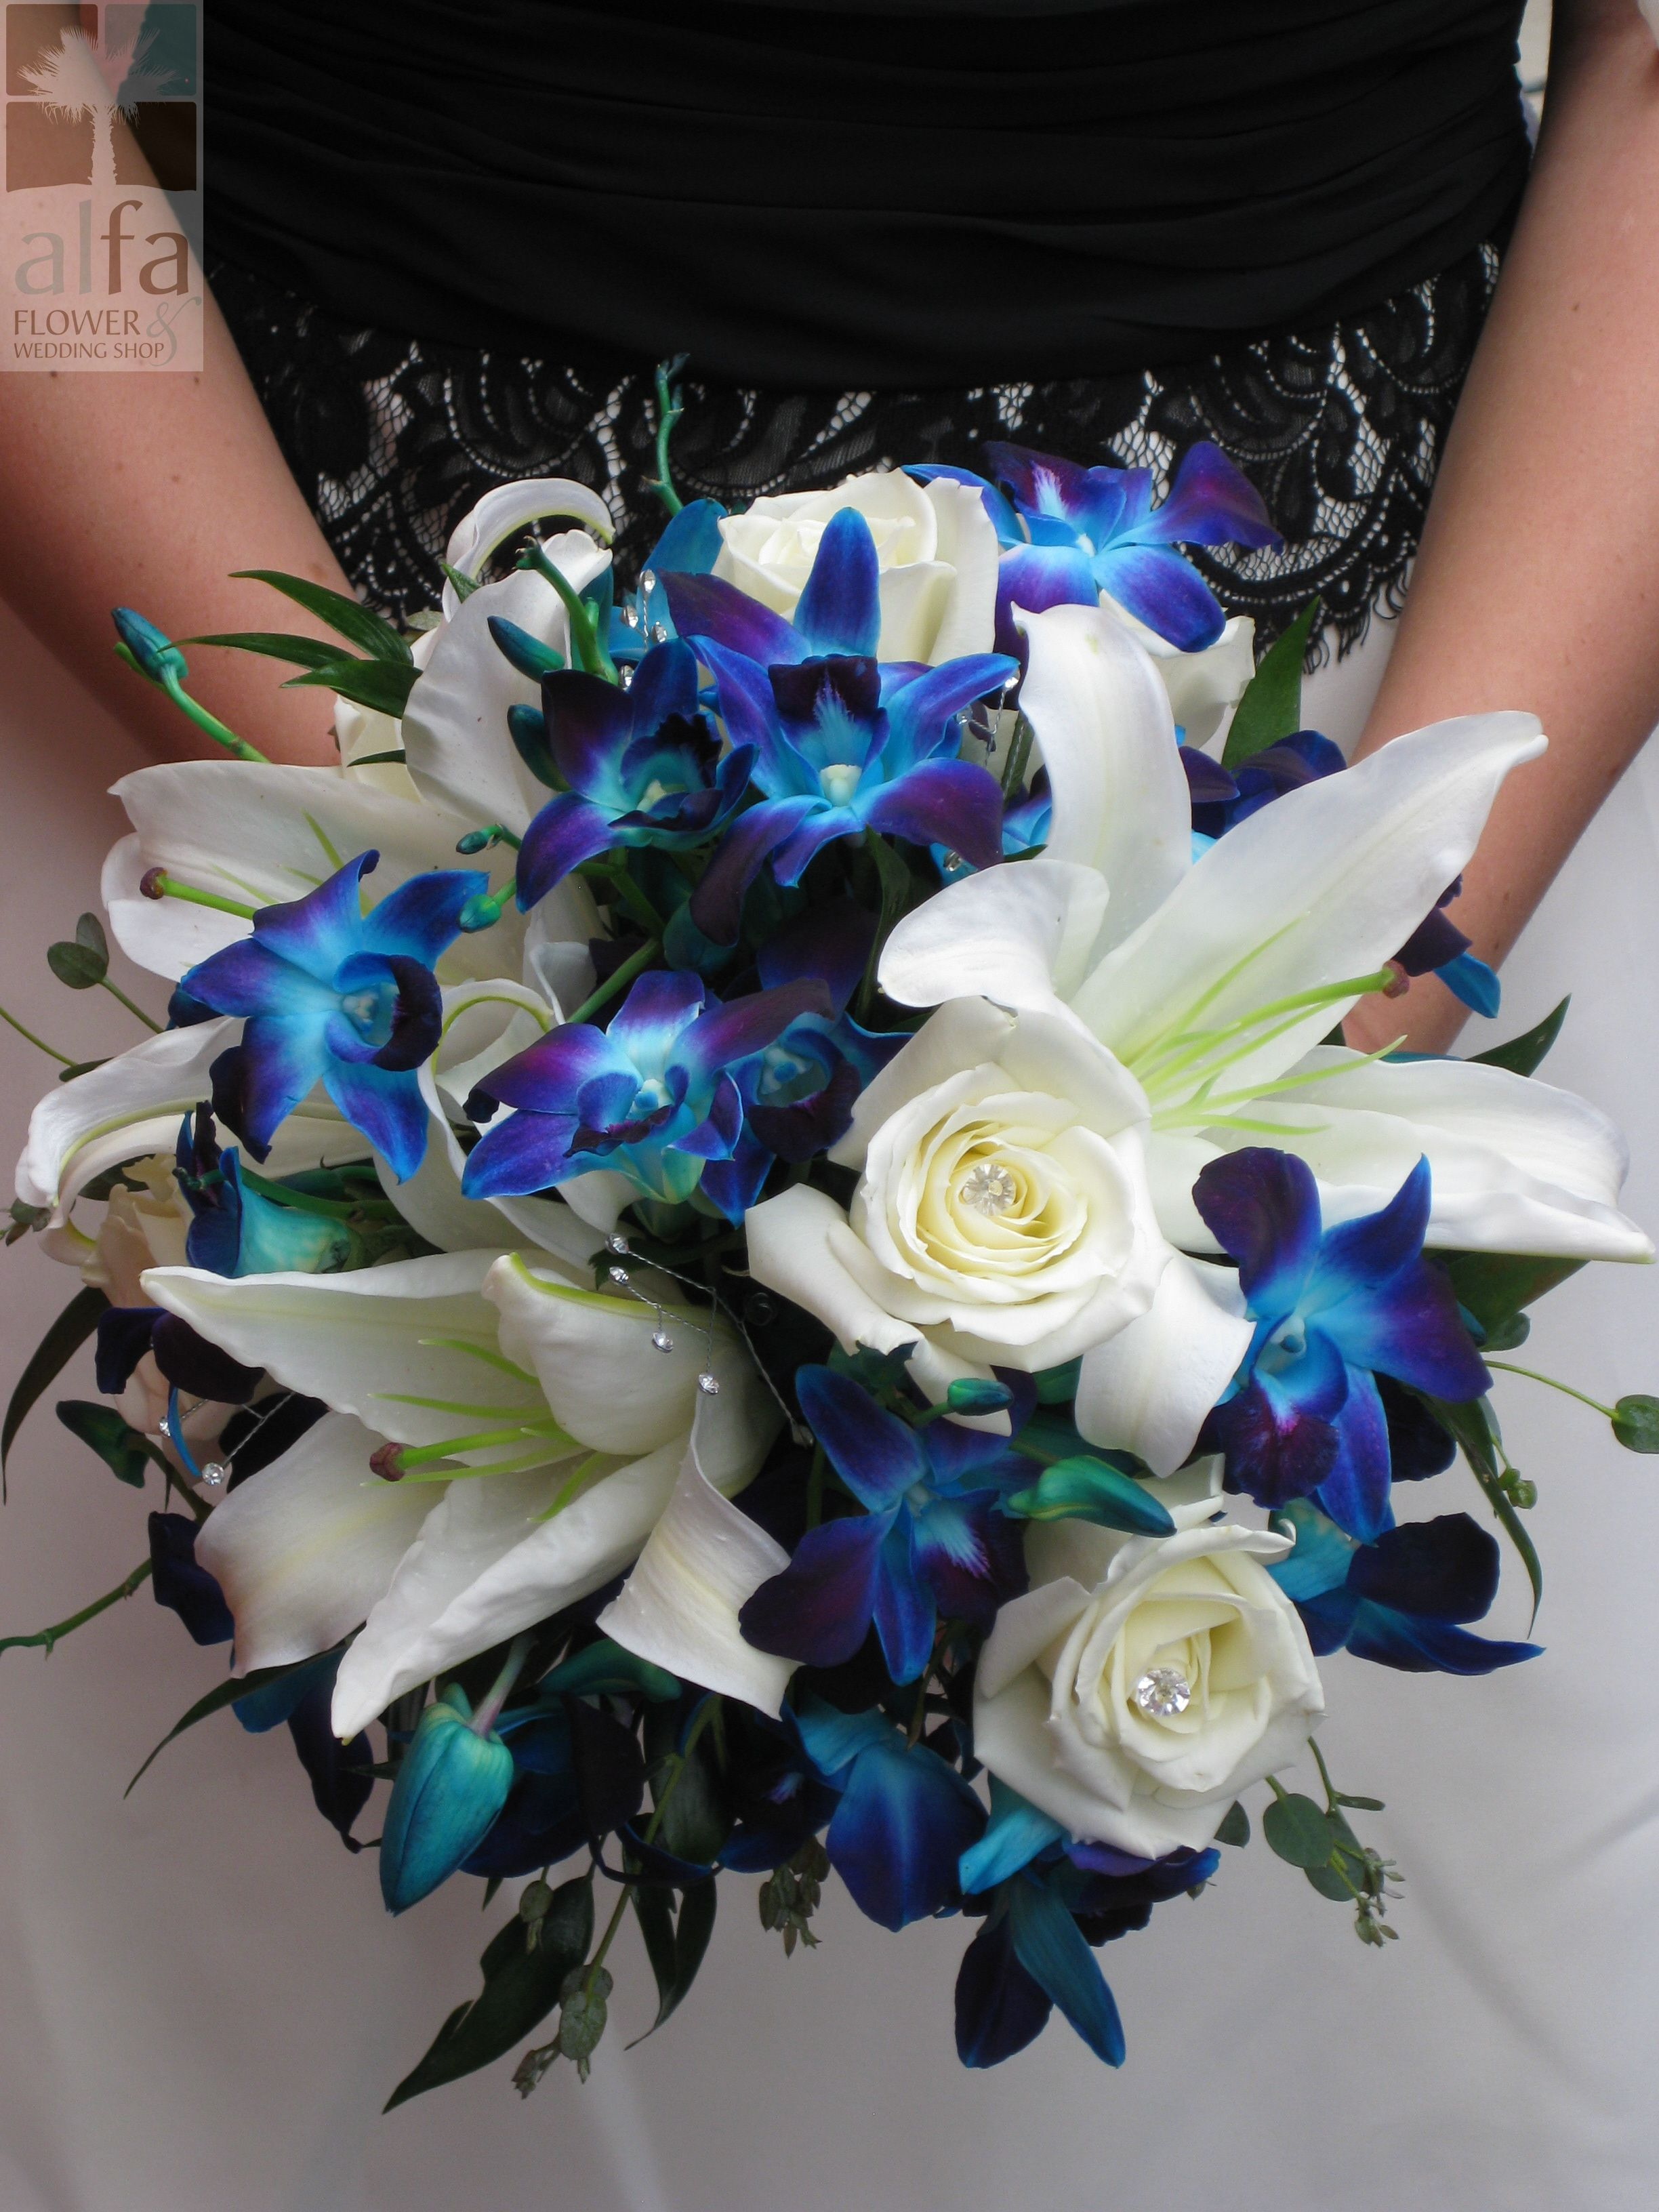 A Gorgeous Bridal Bouquet With White Casablanca Lilies And Blue Bomb